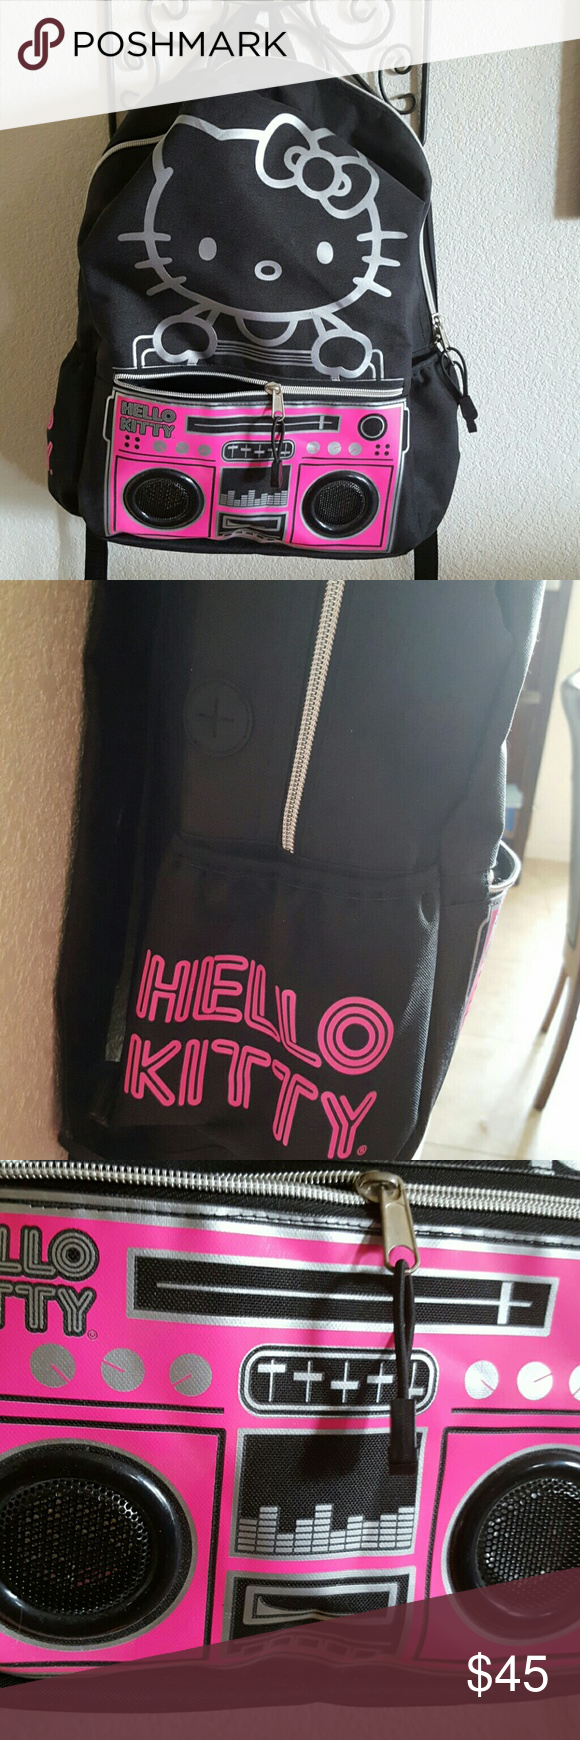 Hello kitty full size backpack with speakers! Brand new without tags. Has a battery pack inside. Never used or tried out.  I bought this brand-new for my daughter but she decided she didnt really like hello kitty anymore. Sanrio  Bags Backpacks